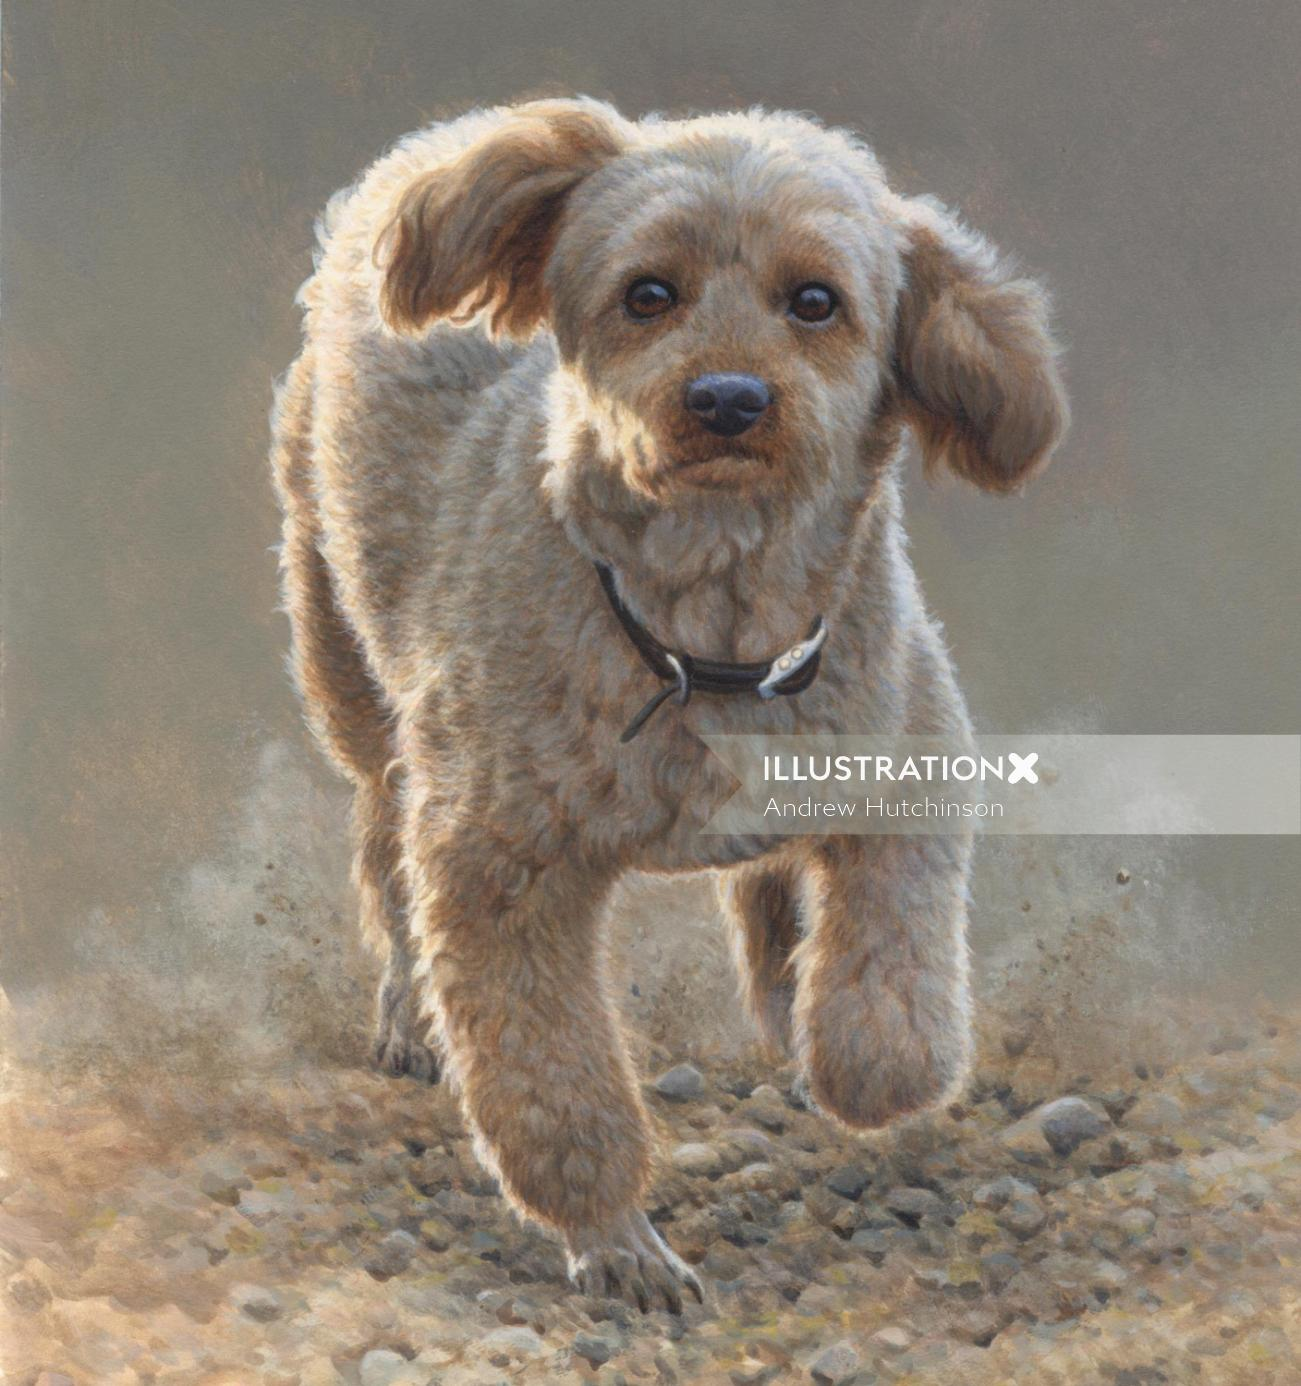 Poodle - dog illustration